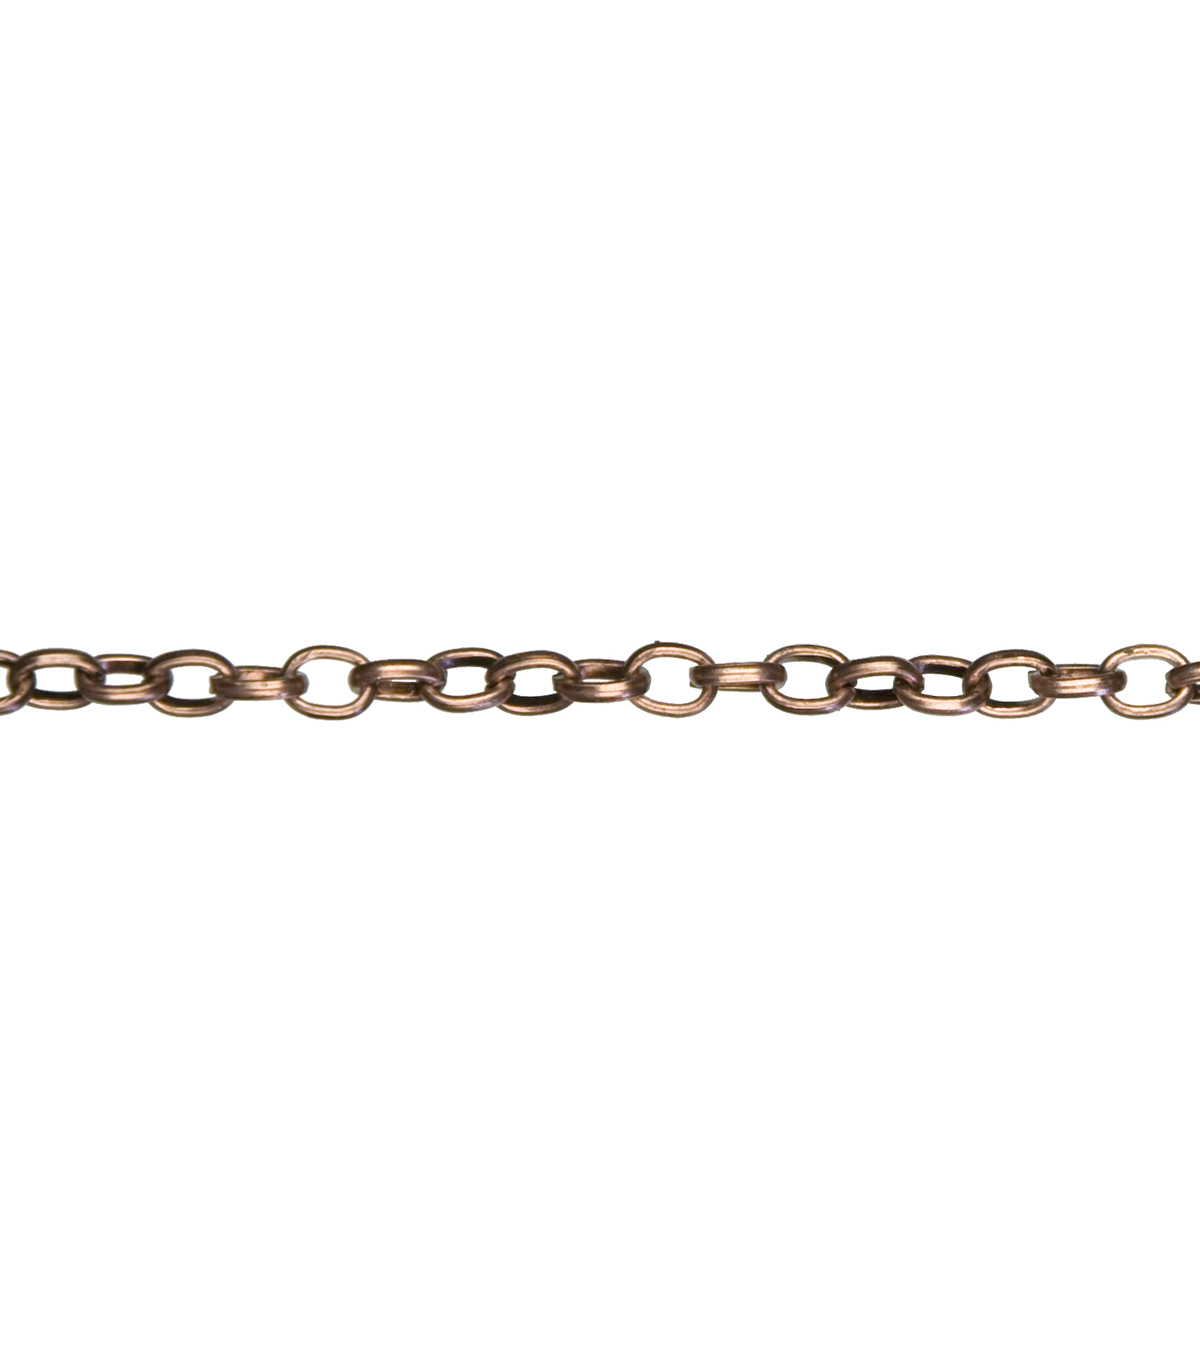 Jewelry Basics Chain-62 Inch Copper Oval Link